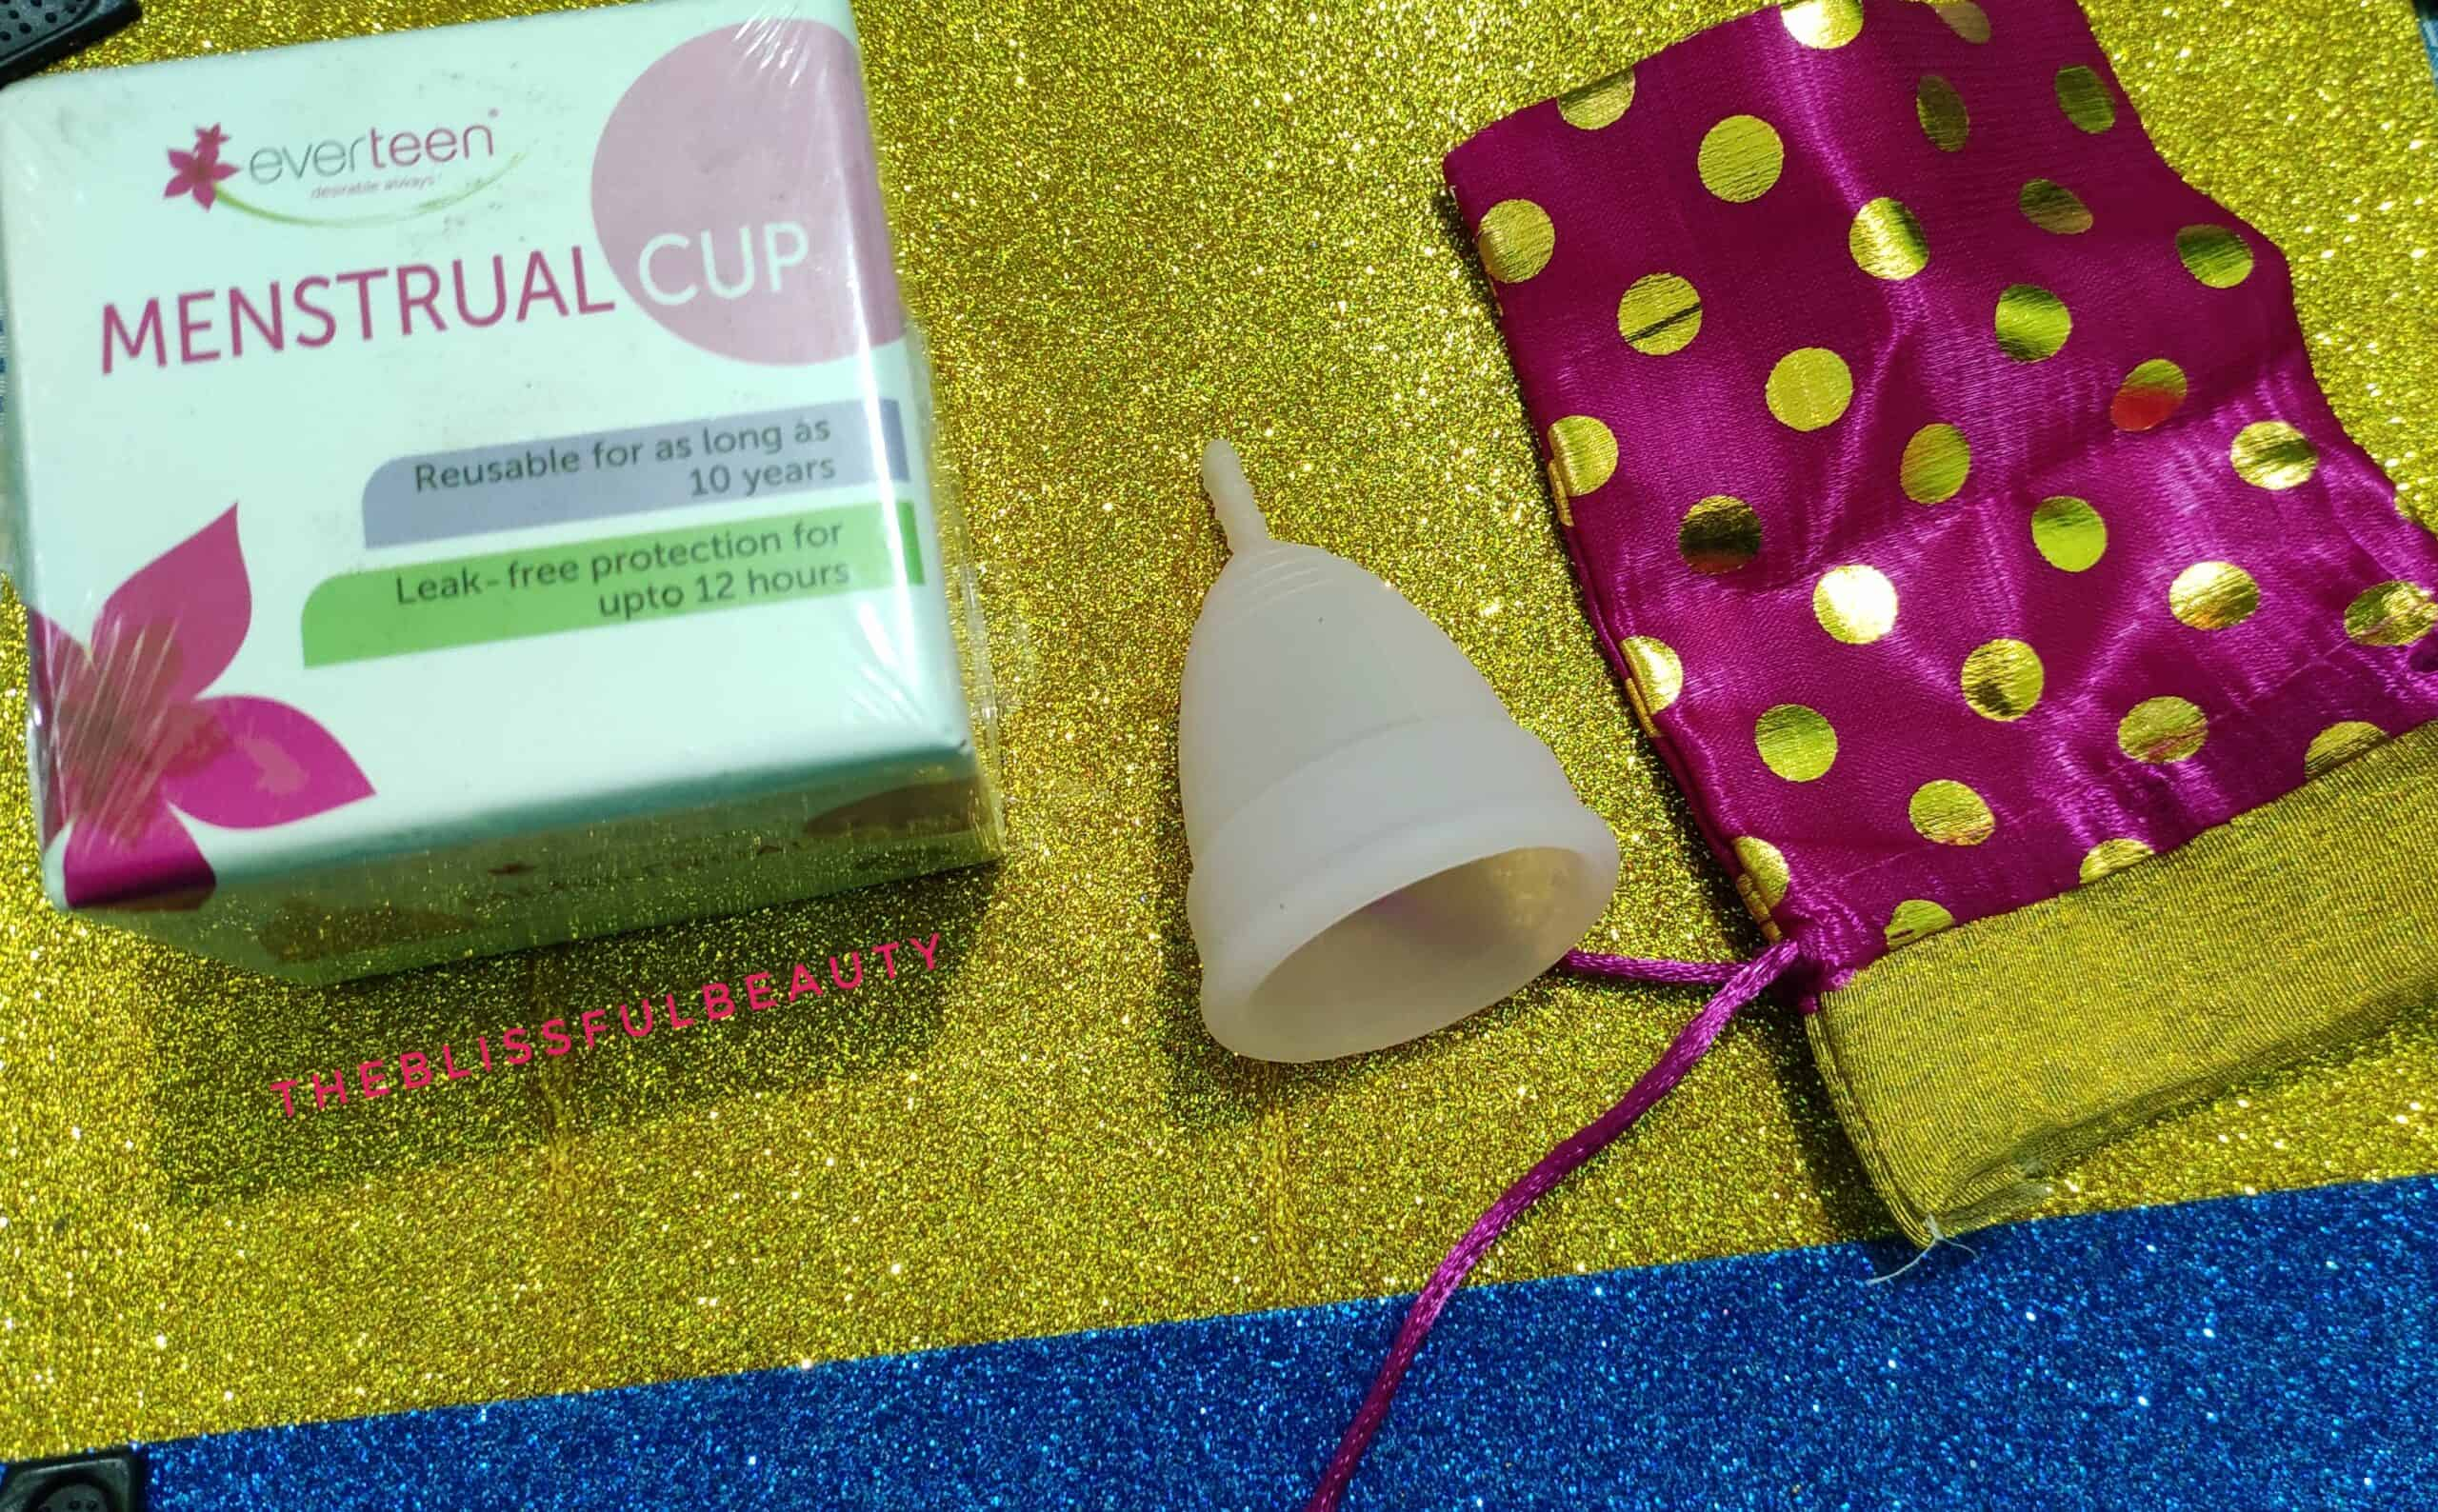 Some facts about female hygiene we always neglect: Everteen Menstrual cup